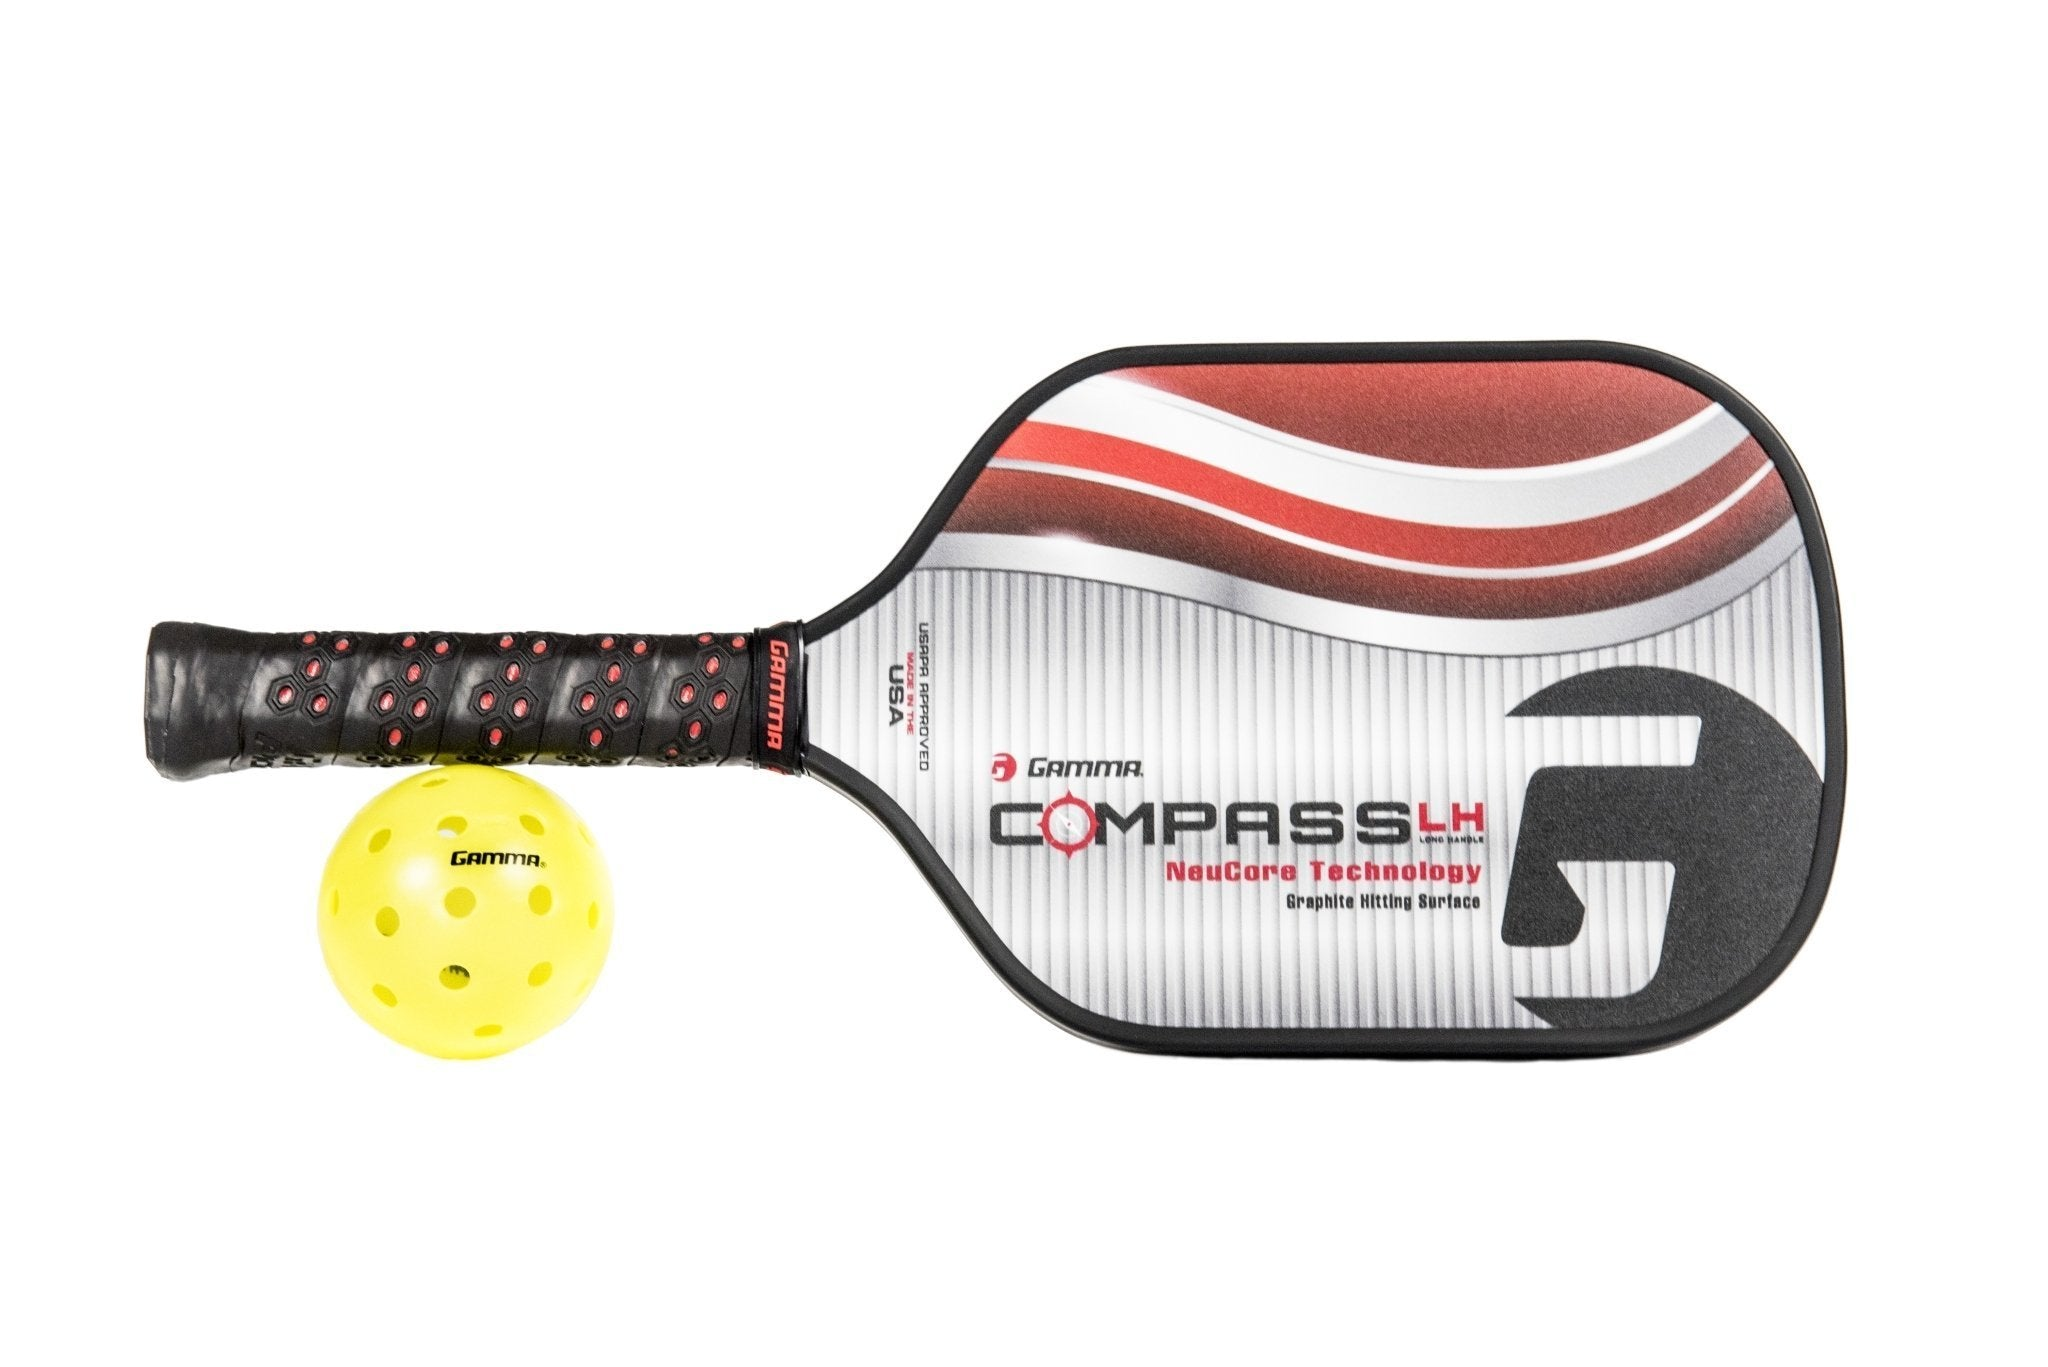 Compass LH Elongated Paddle - Activeadultliving